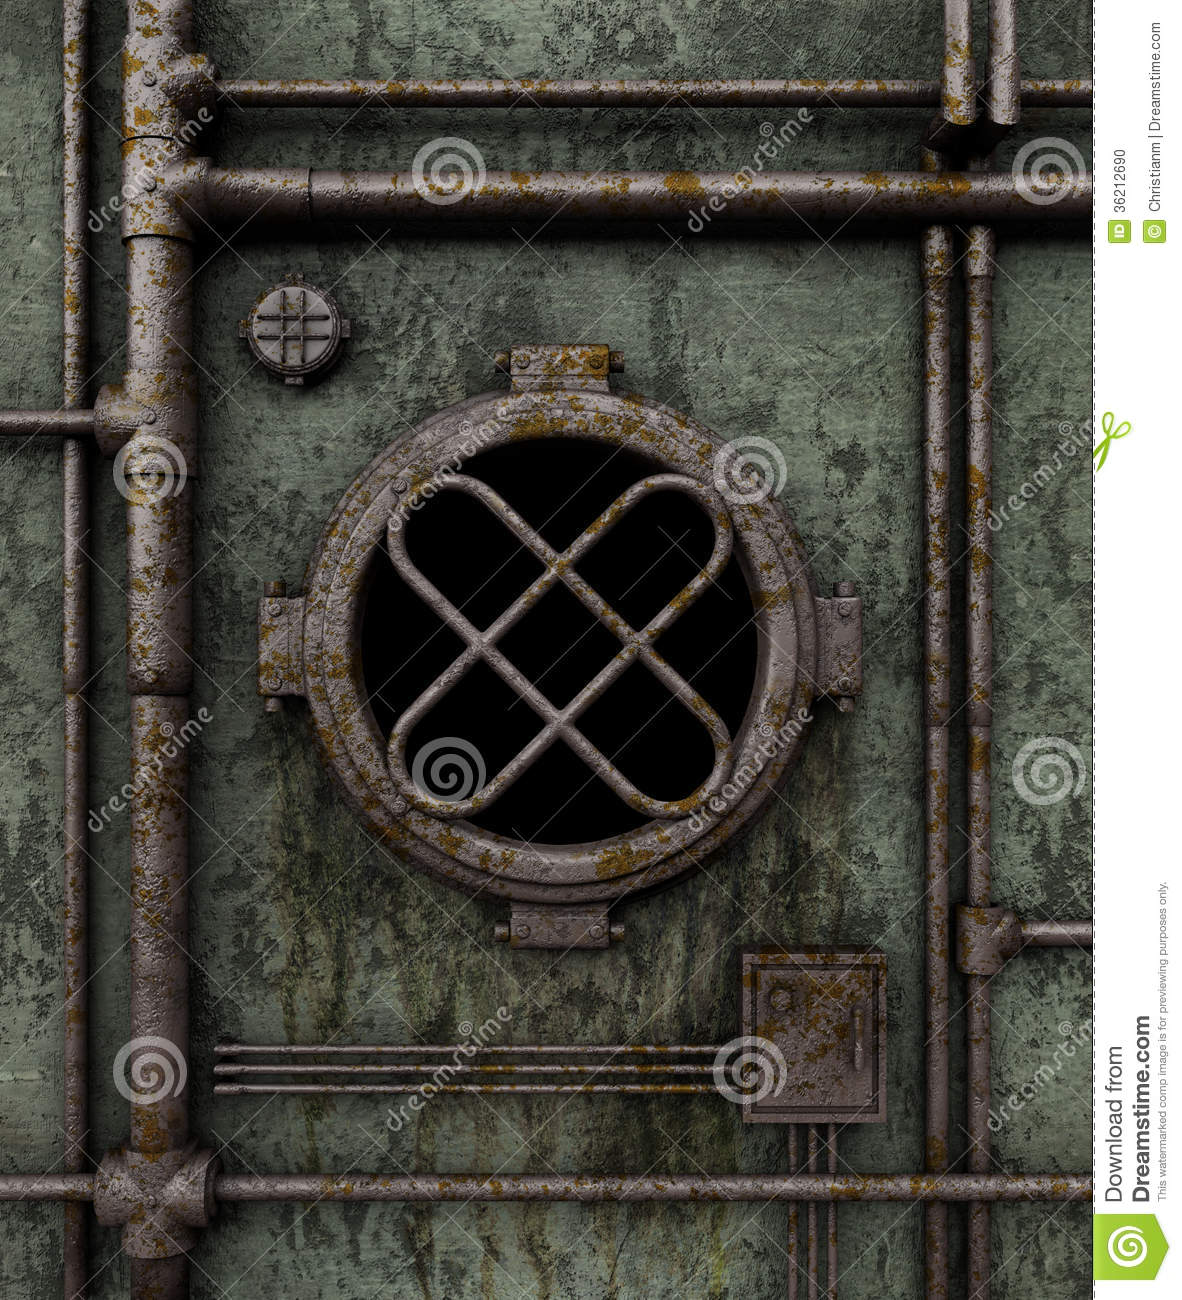 Old Submarine Porthole Stock Photo Image 36212690